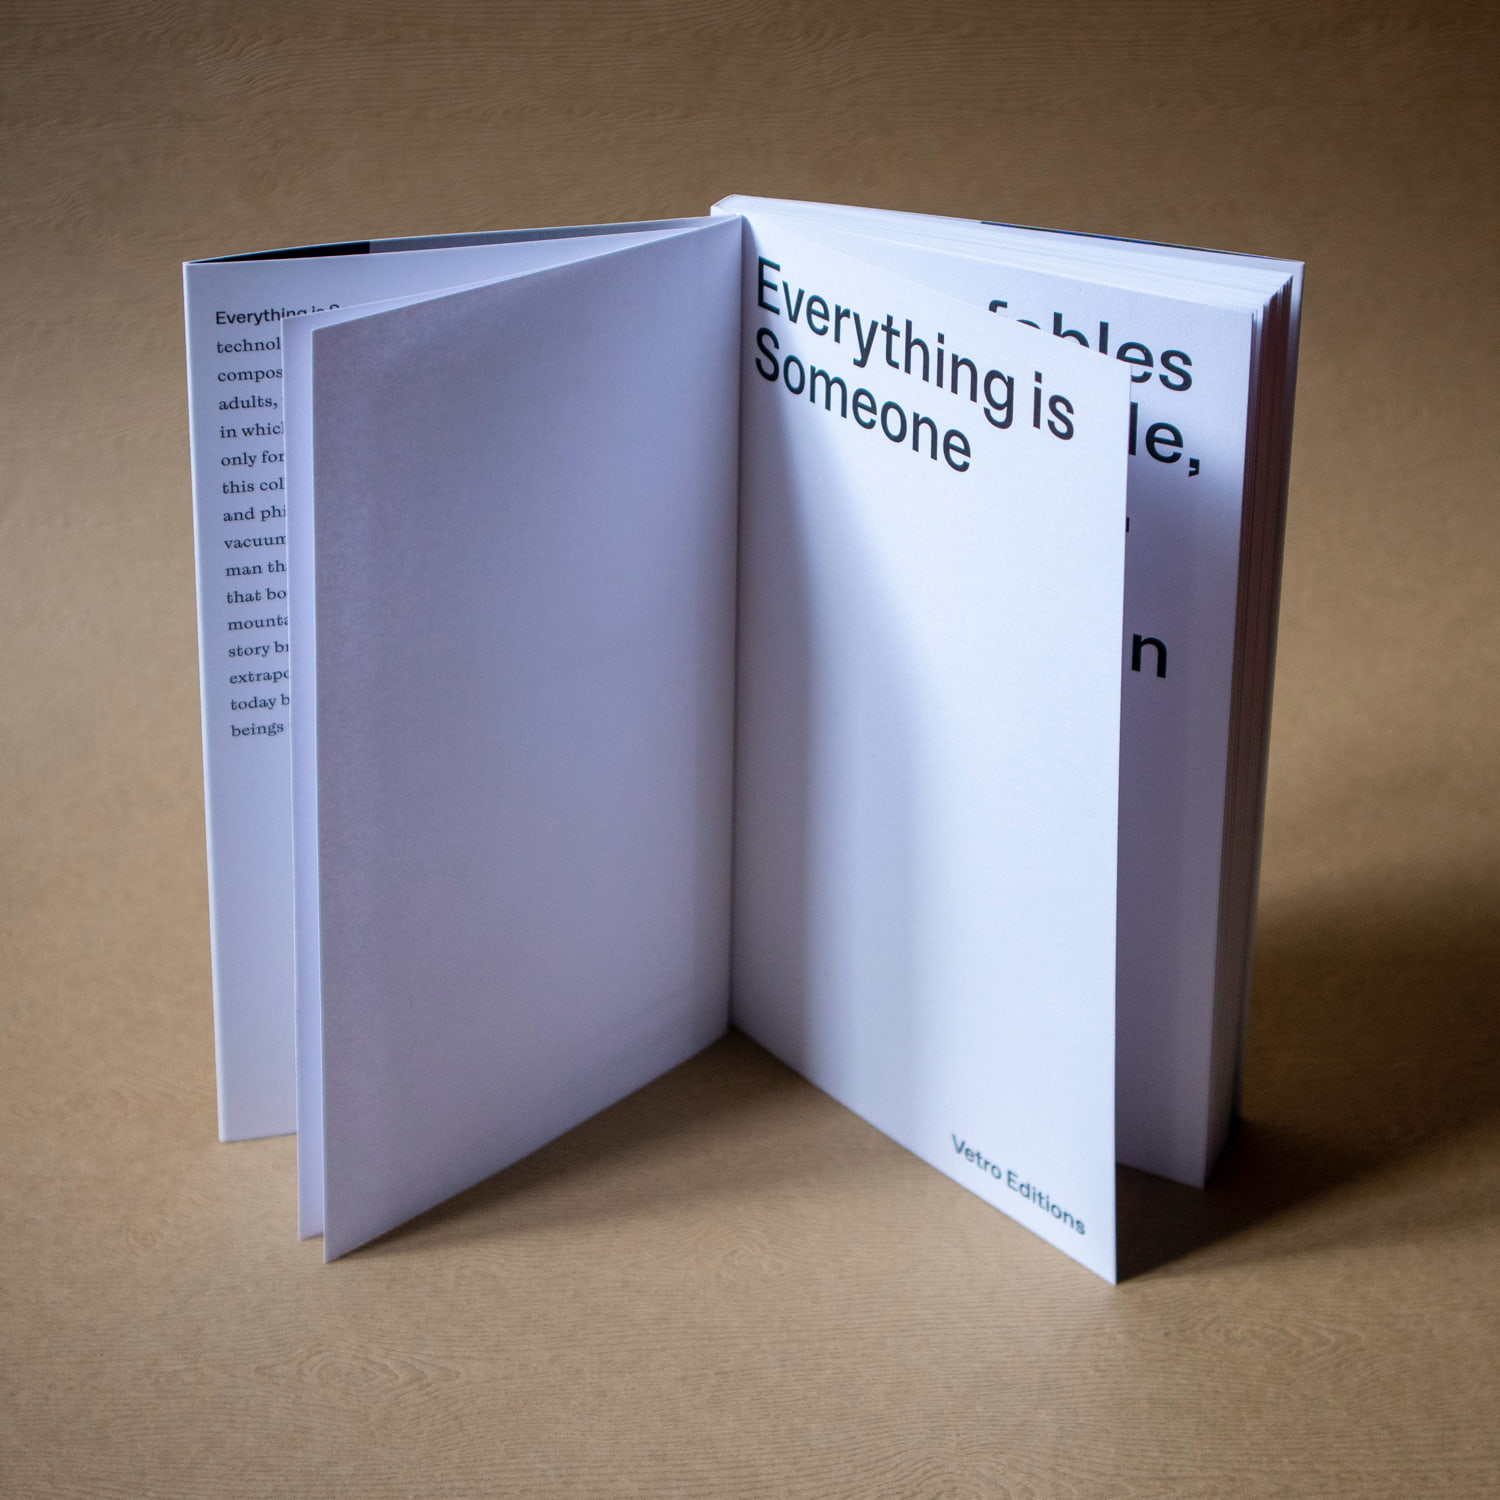 everything is someone vetro editions 6